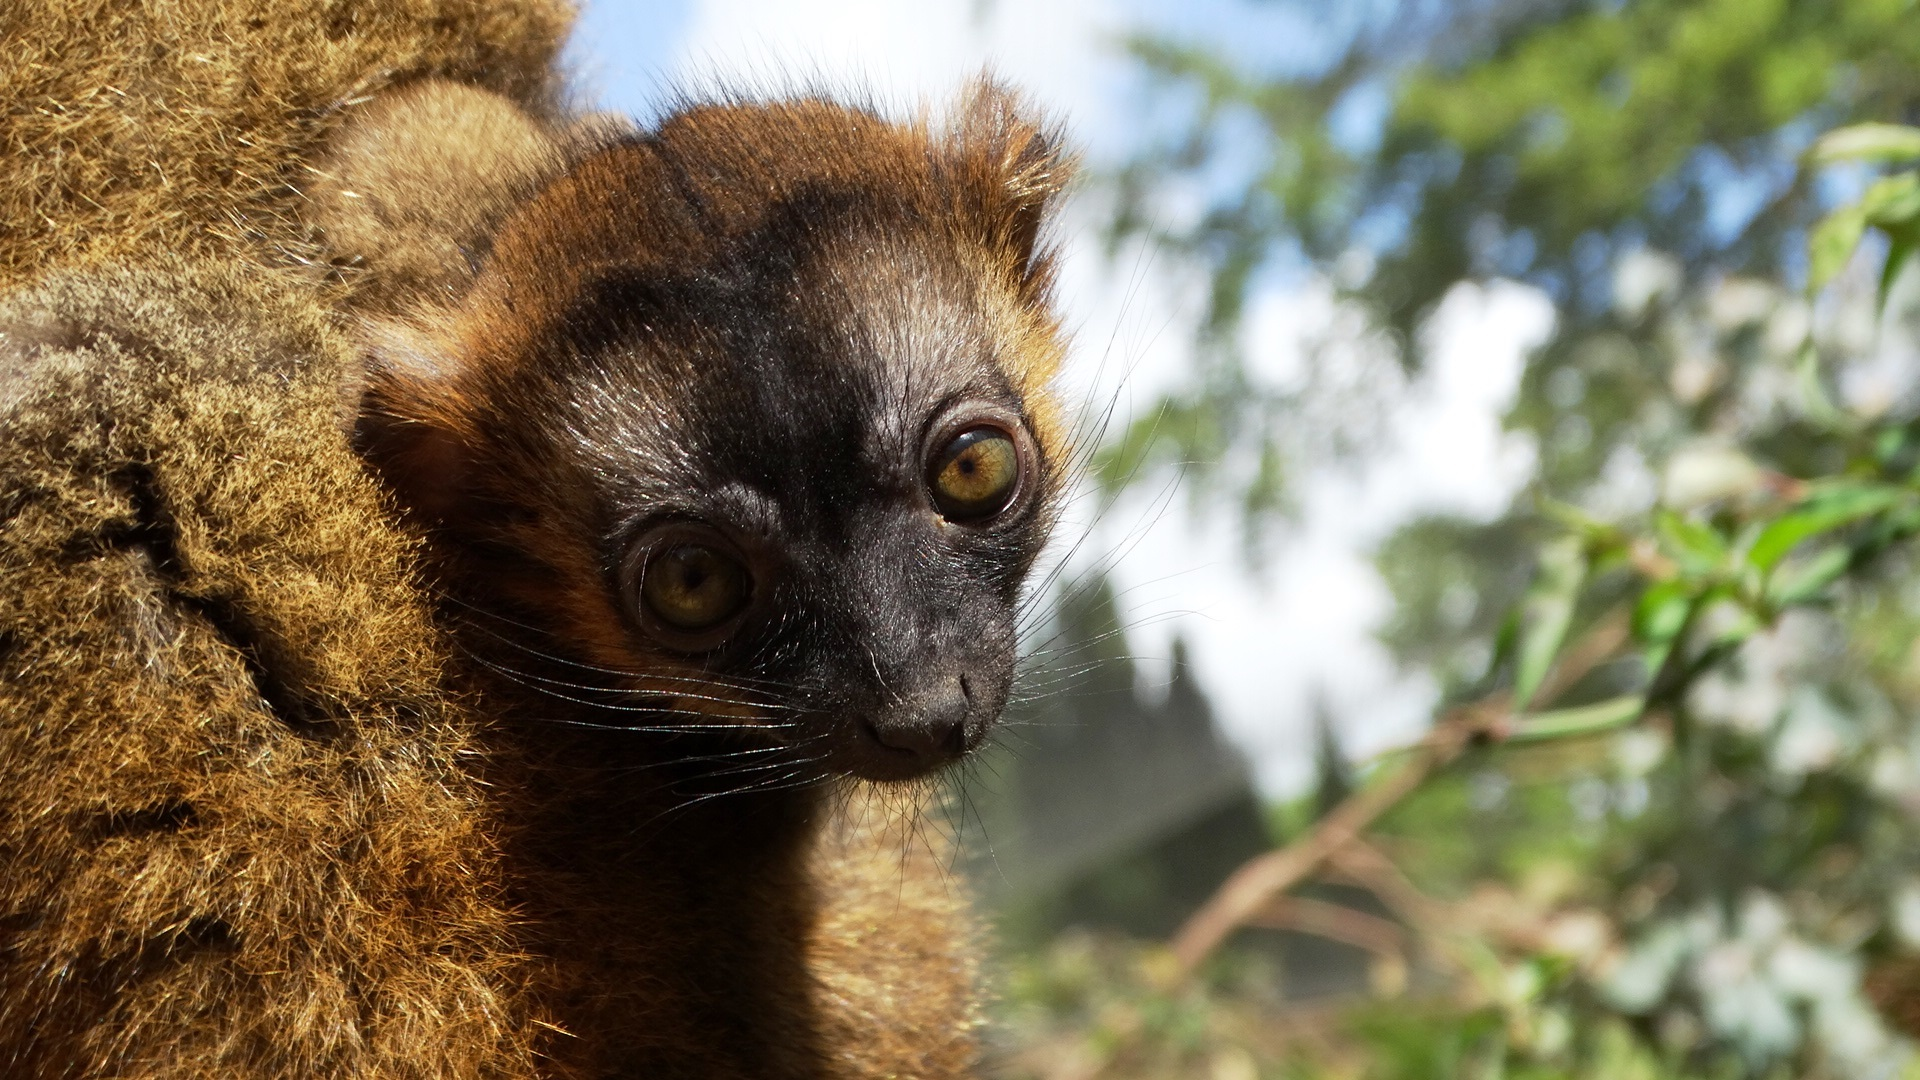 WELCOME: Lemur baby is the latest arrival to Cotswold Wildlife Park just days ahead of Lemur Week celebrations.